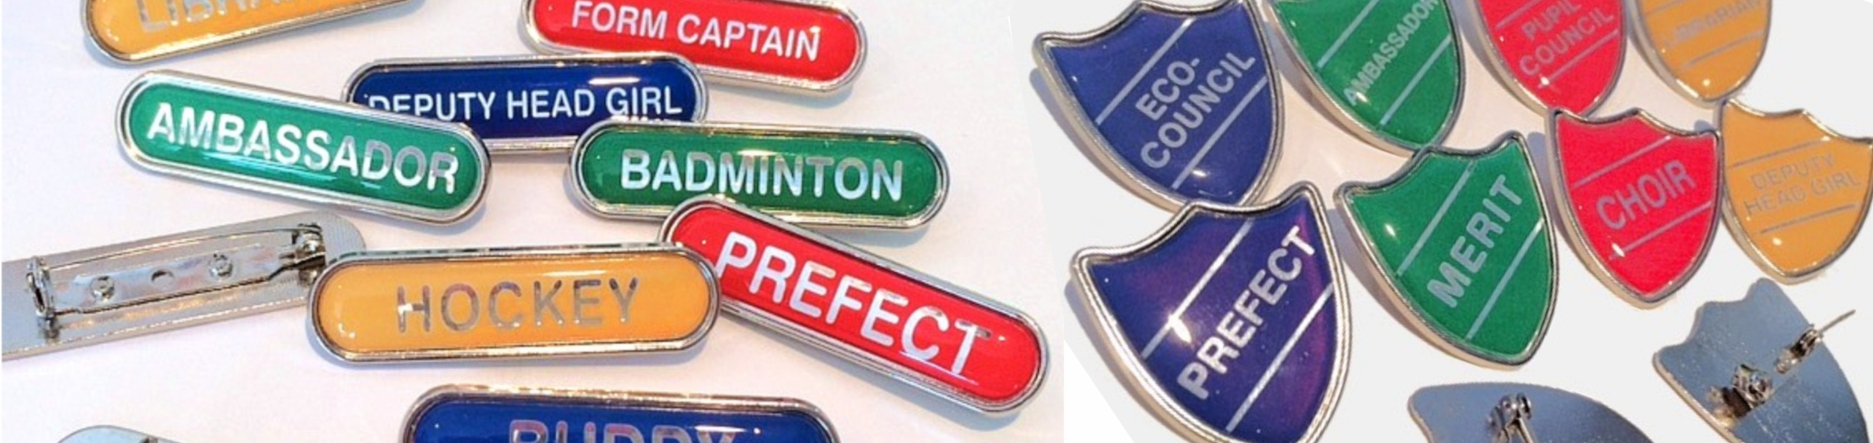 School Badges in bar and shield shapes. 80 titles stocked.